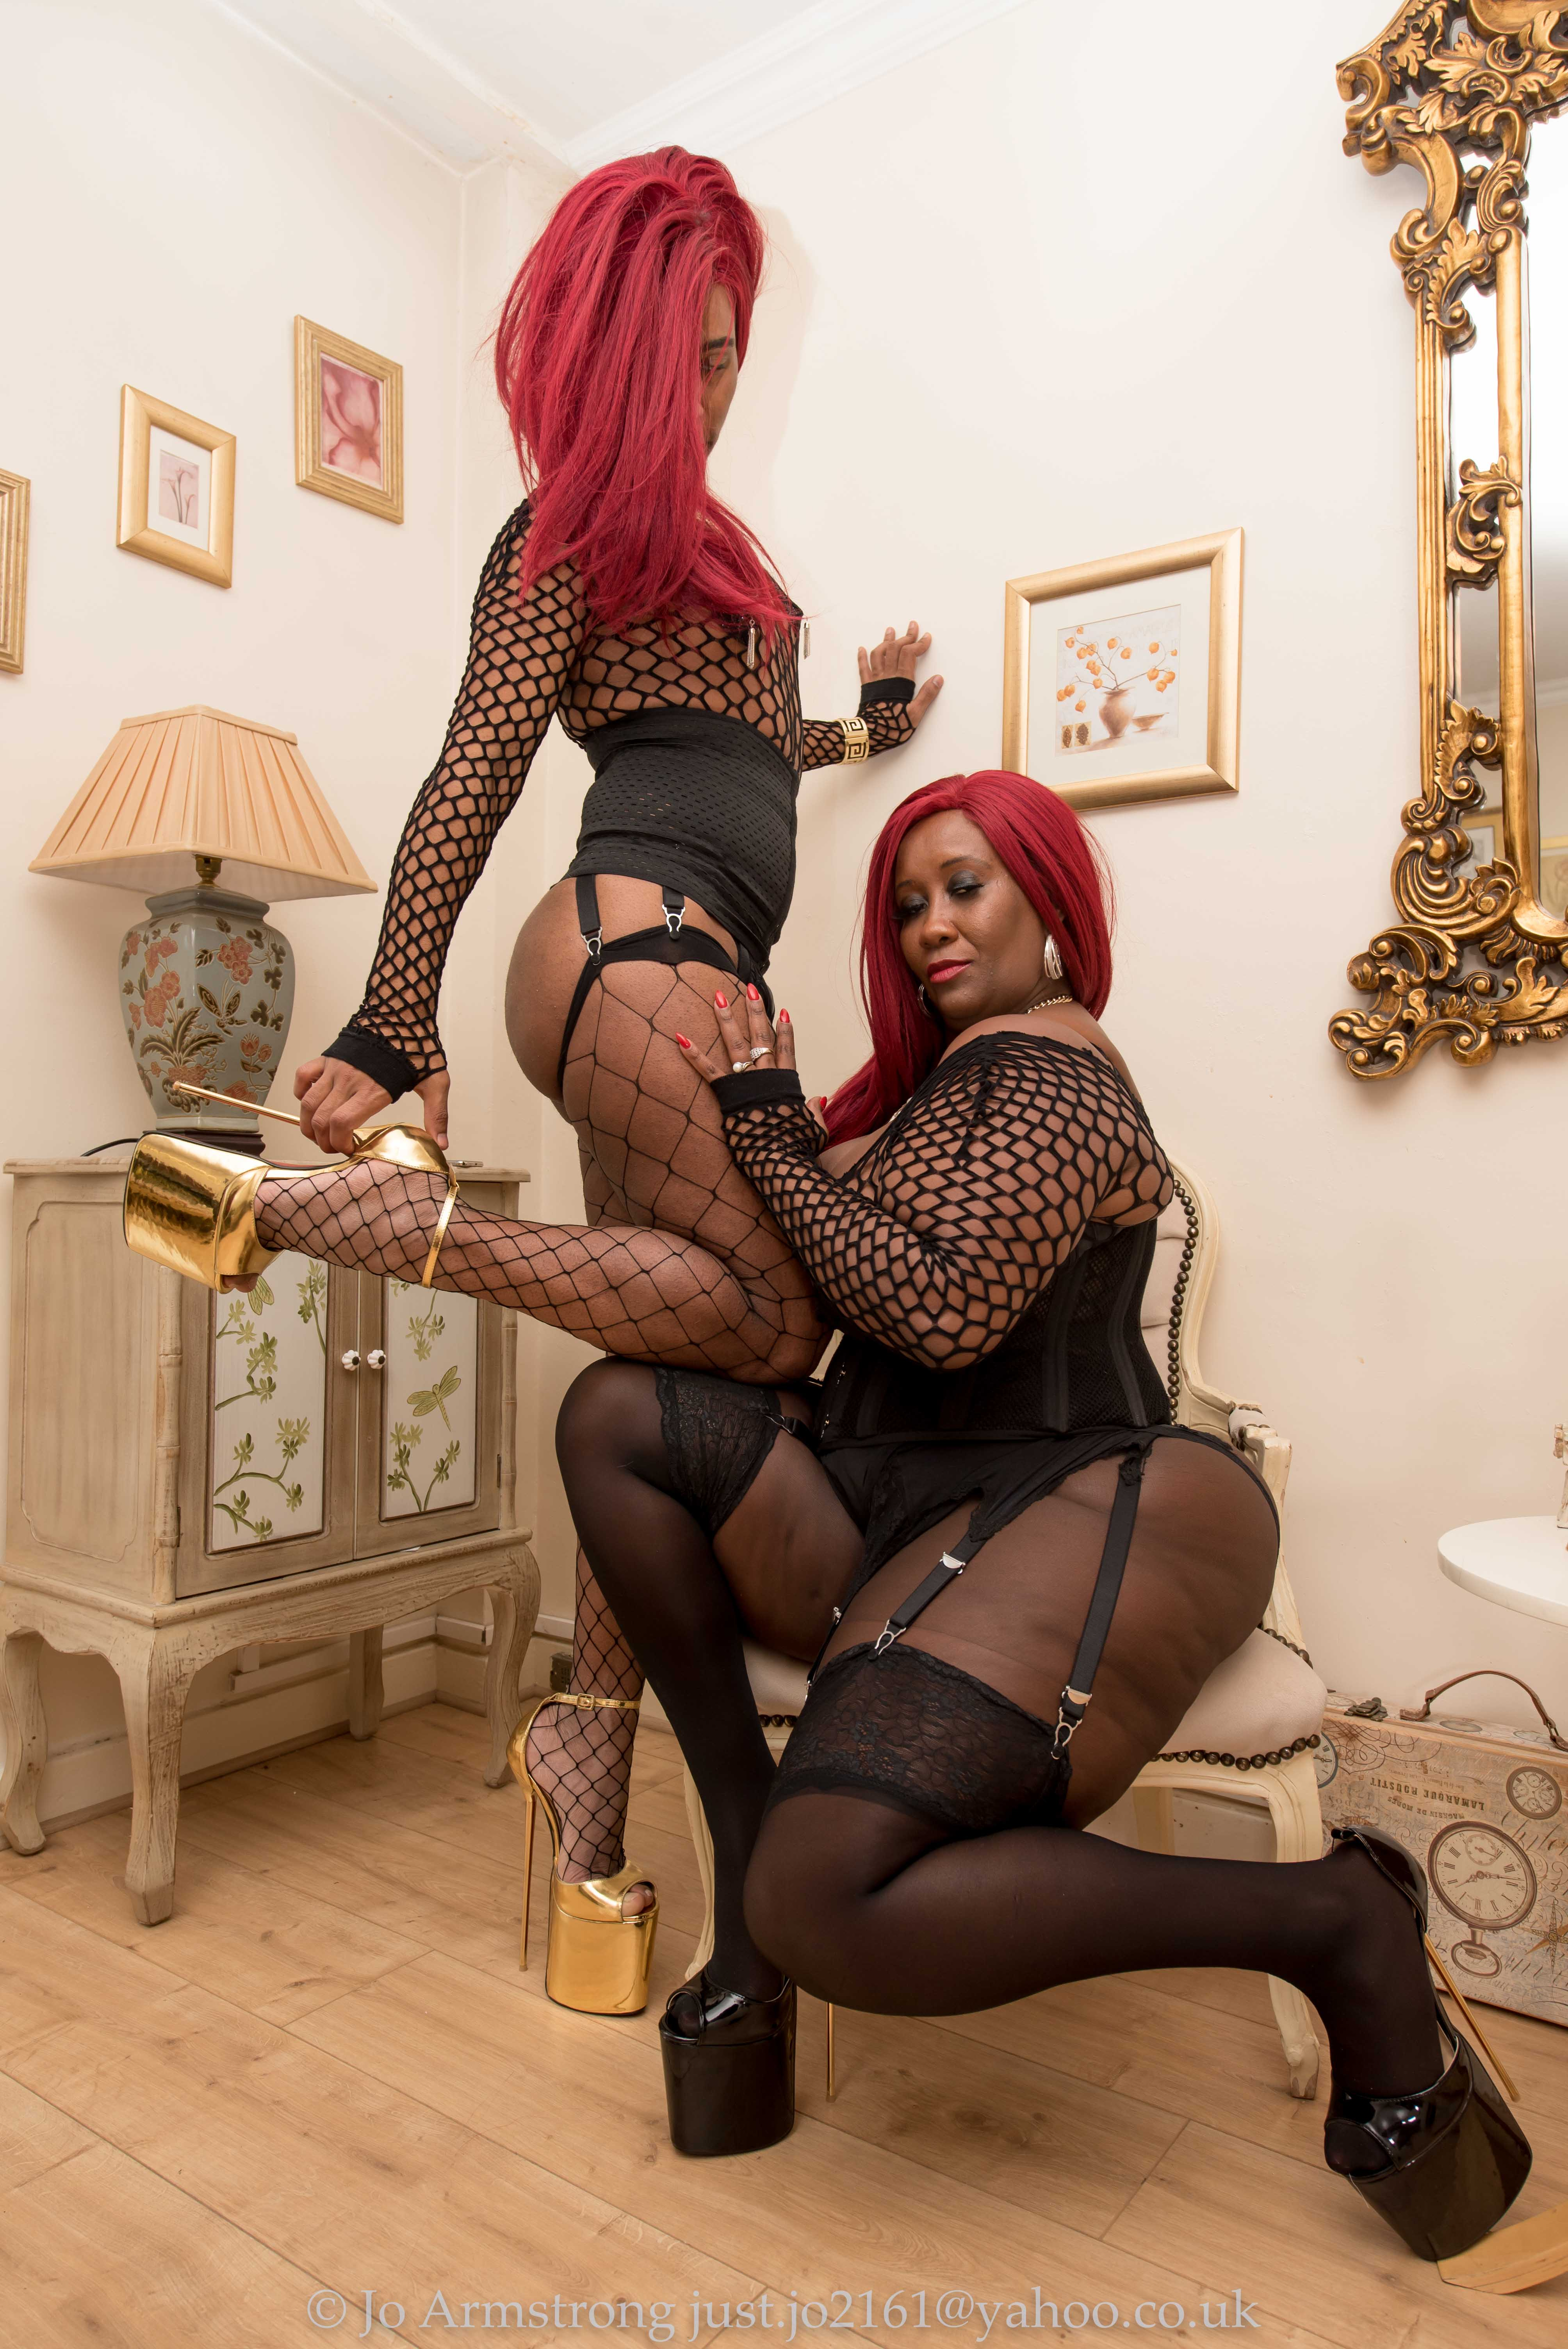 Thank for black dominatrix uk that